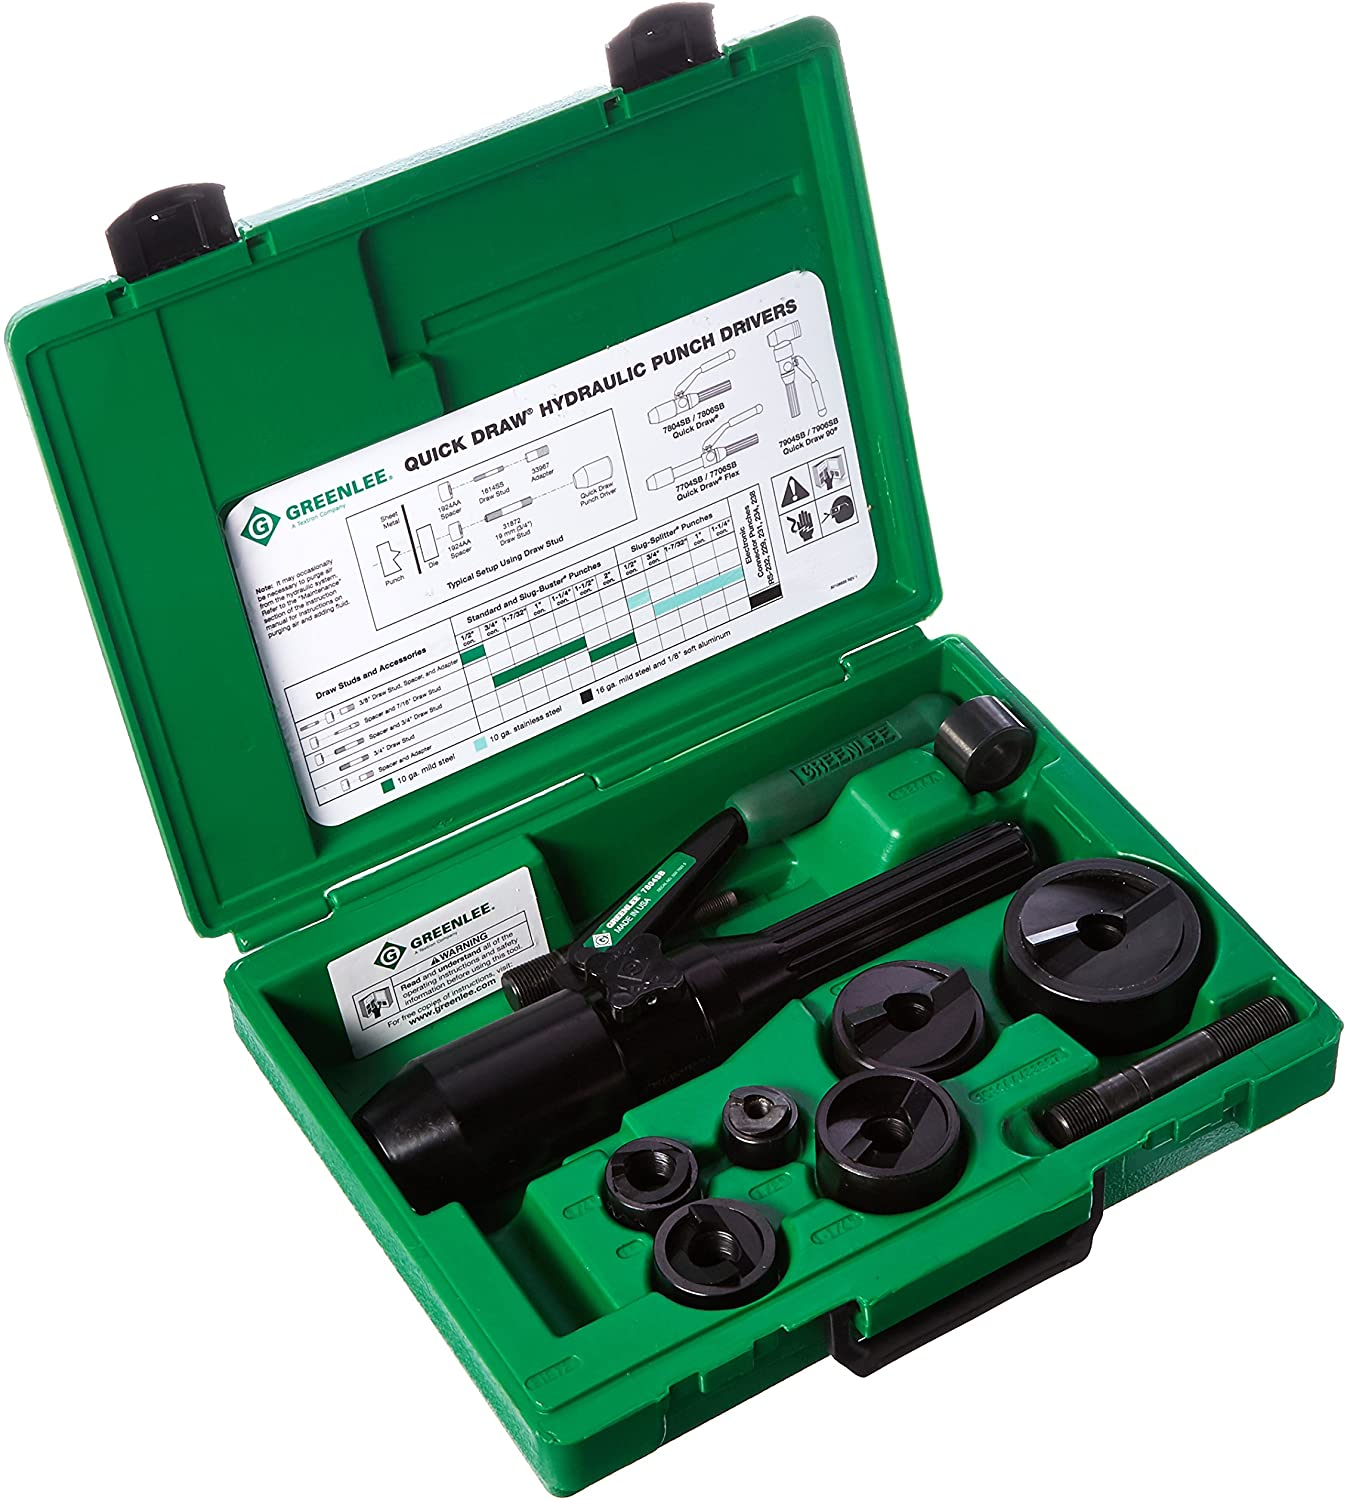 Adaptor Pull Rods for Hydraulic Knockout Punch Kits